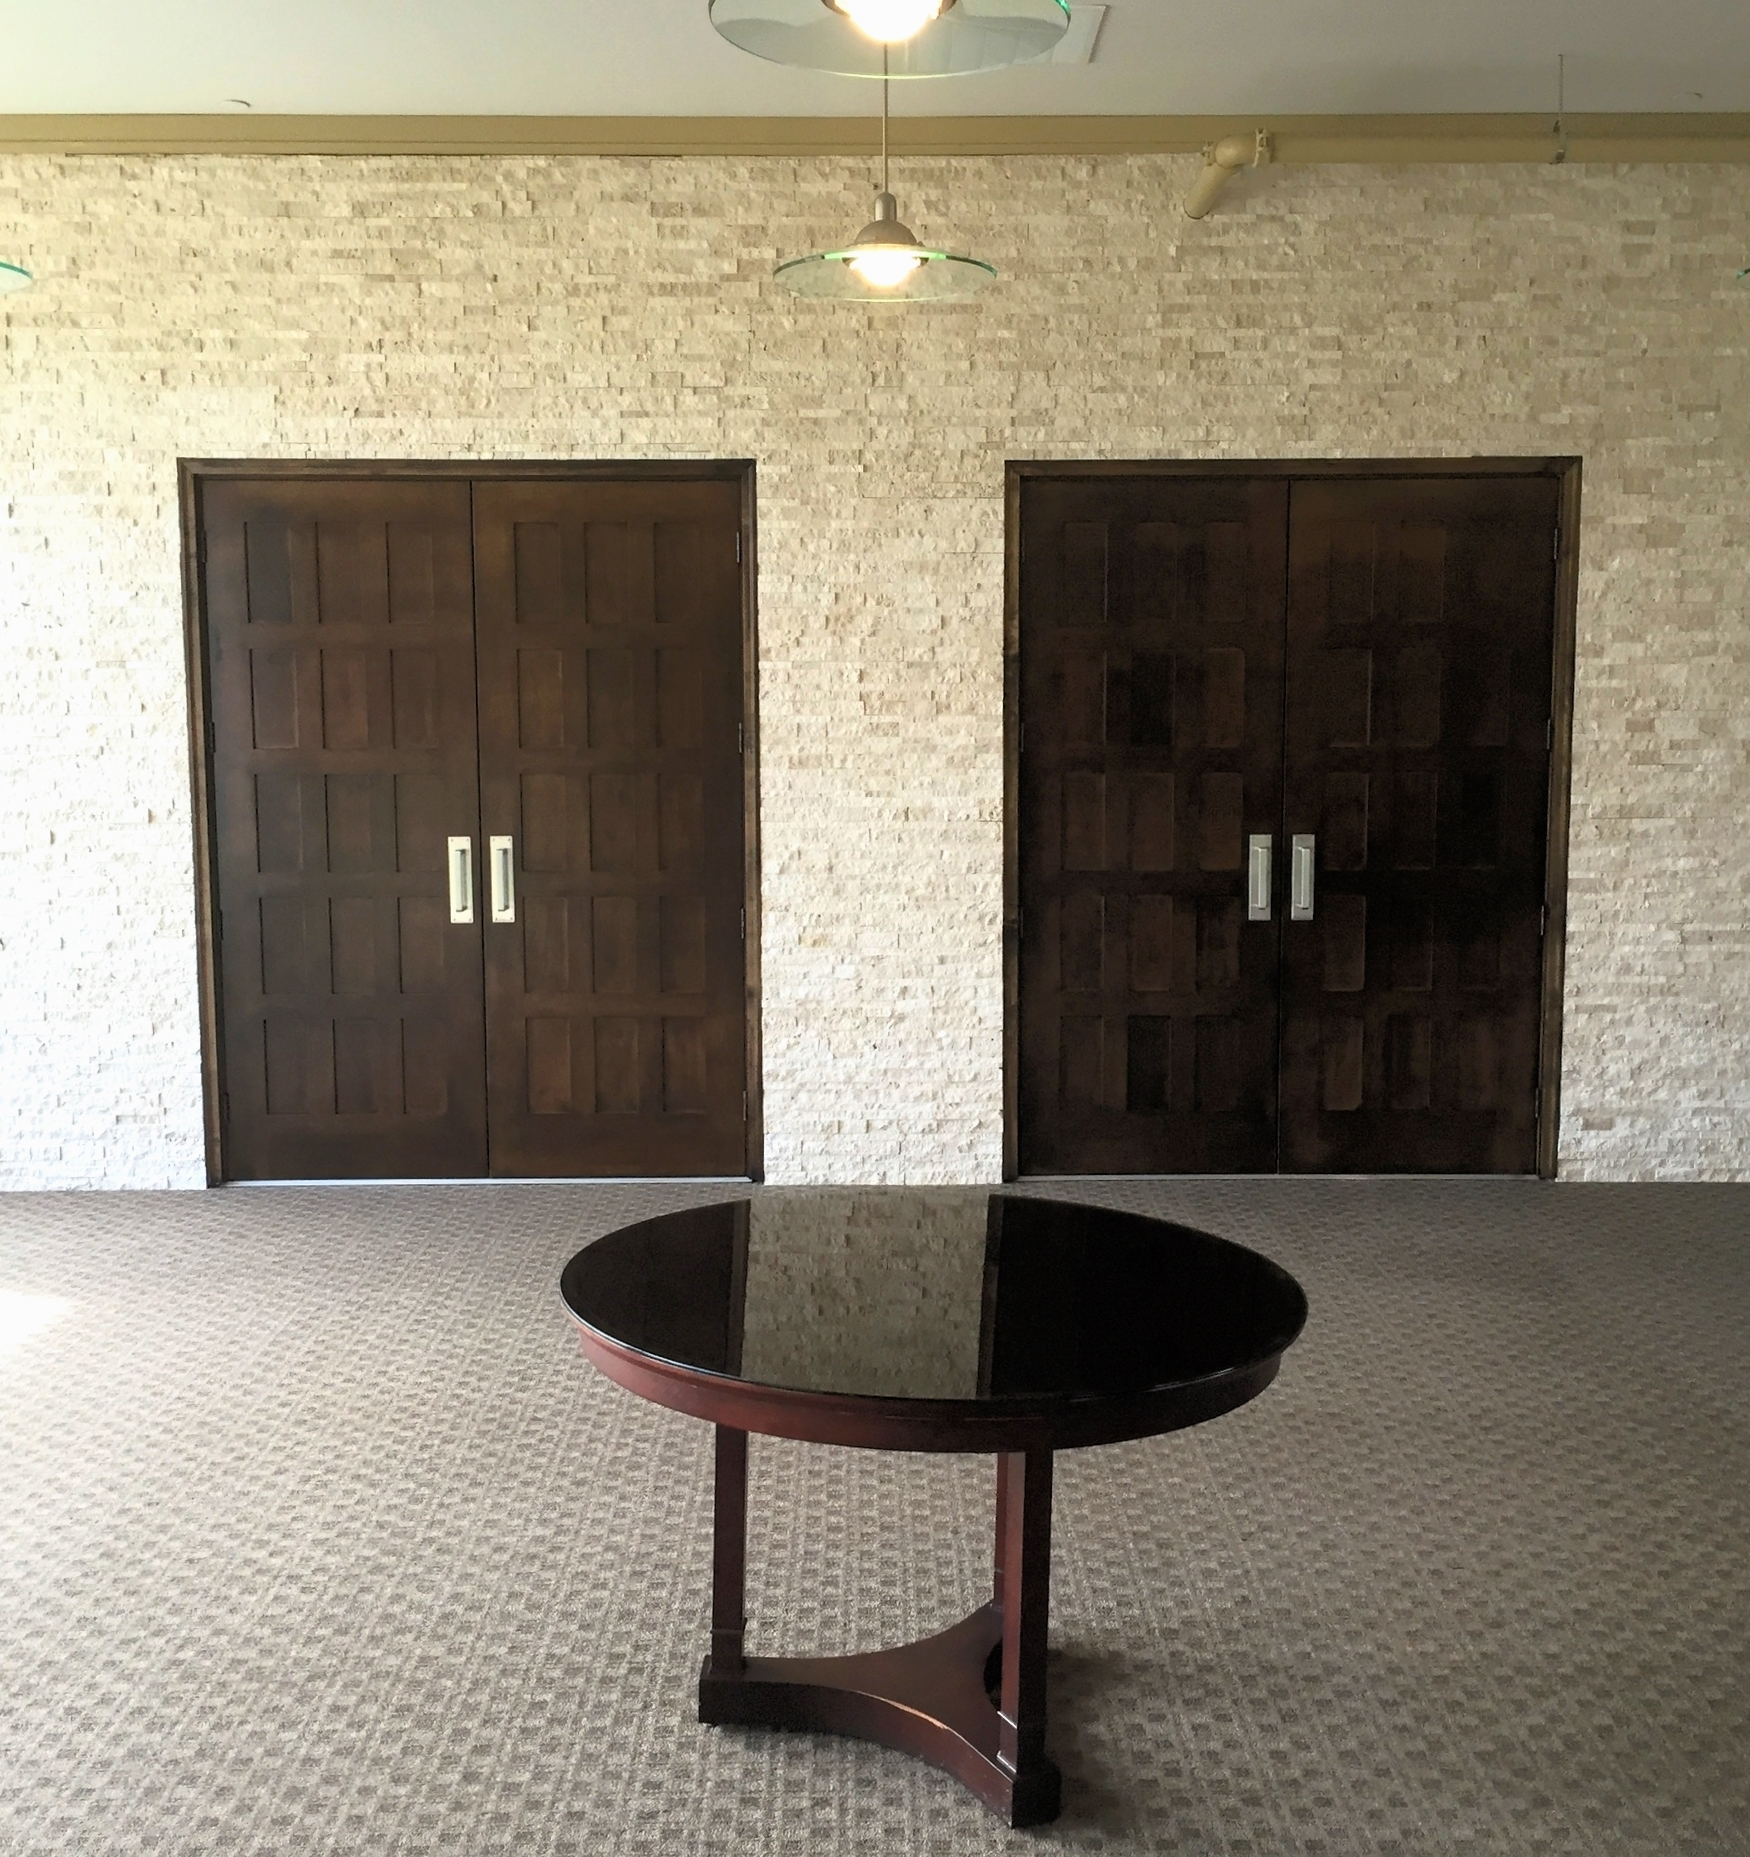 Solid wood doors make up the front of the new vestibule which leads into the Worship Center | Hulen Street Church in Fort Worth, TX